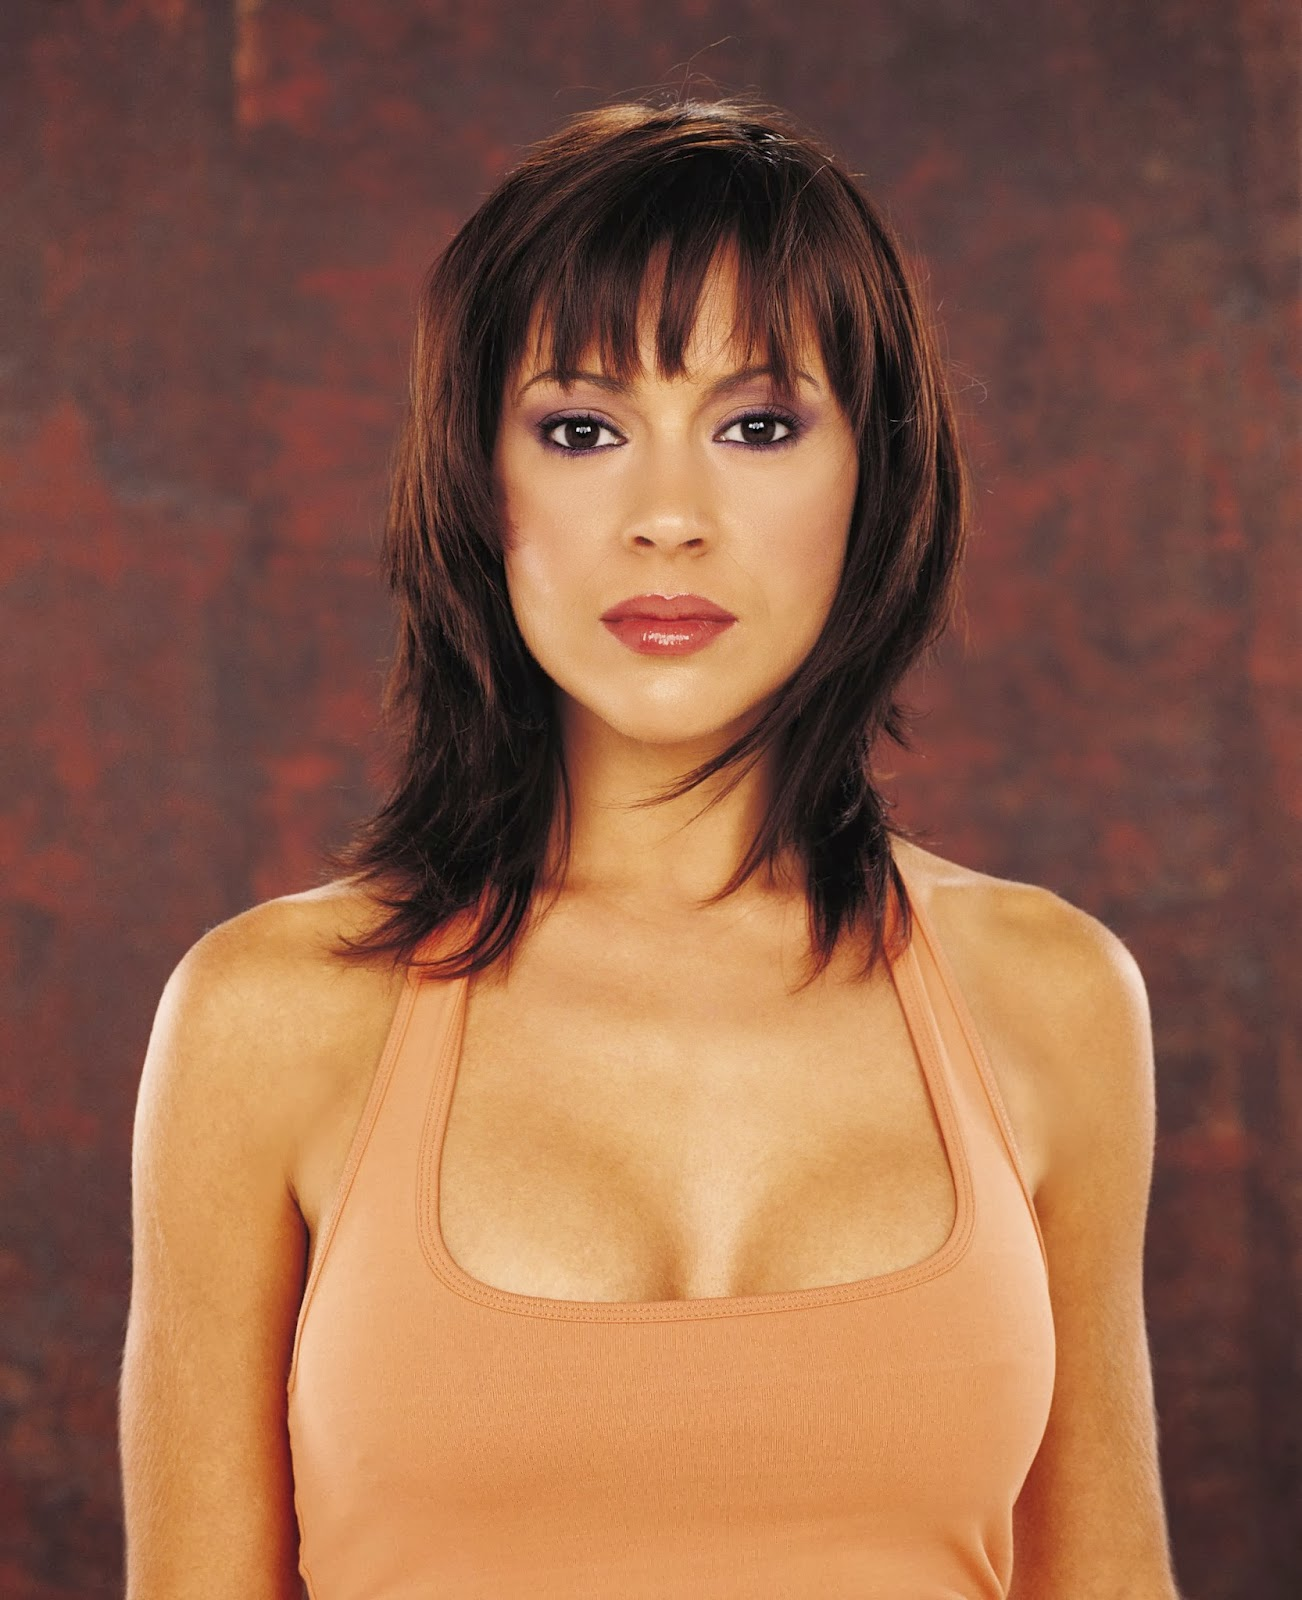 Sexy photos of alyssa milano